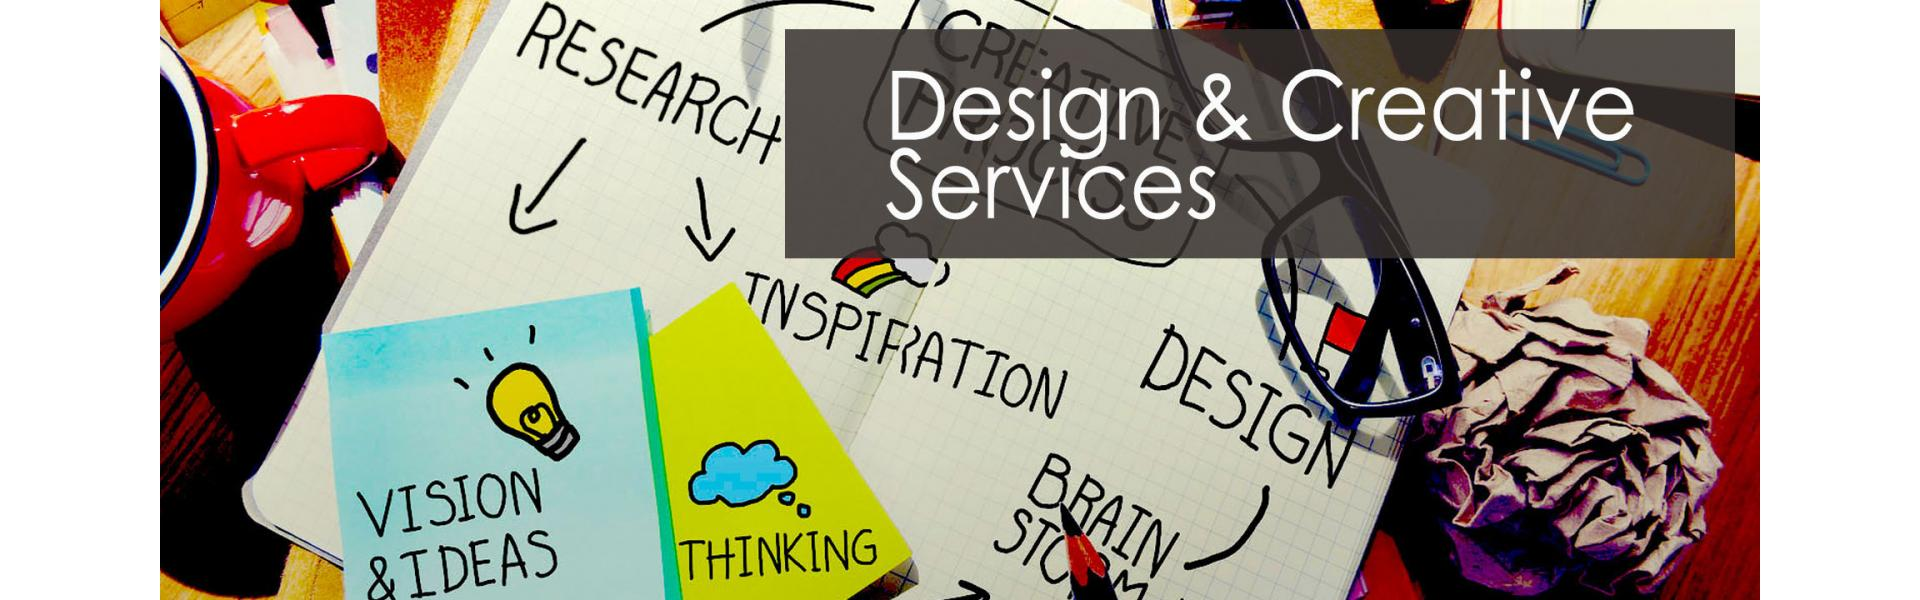 Design and Creative Services